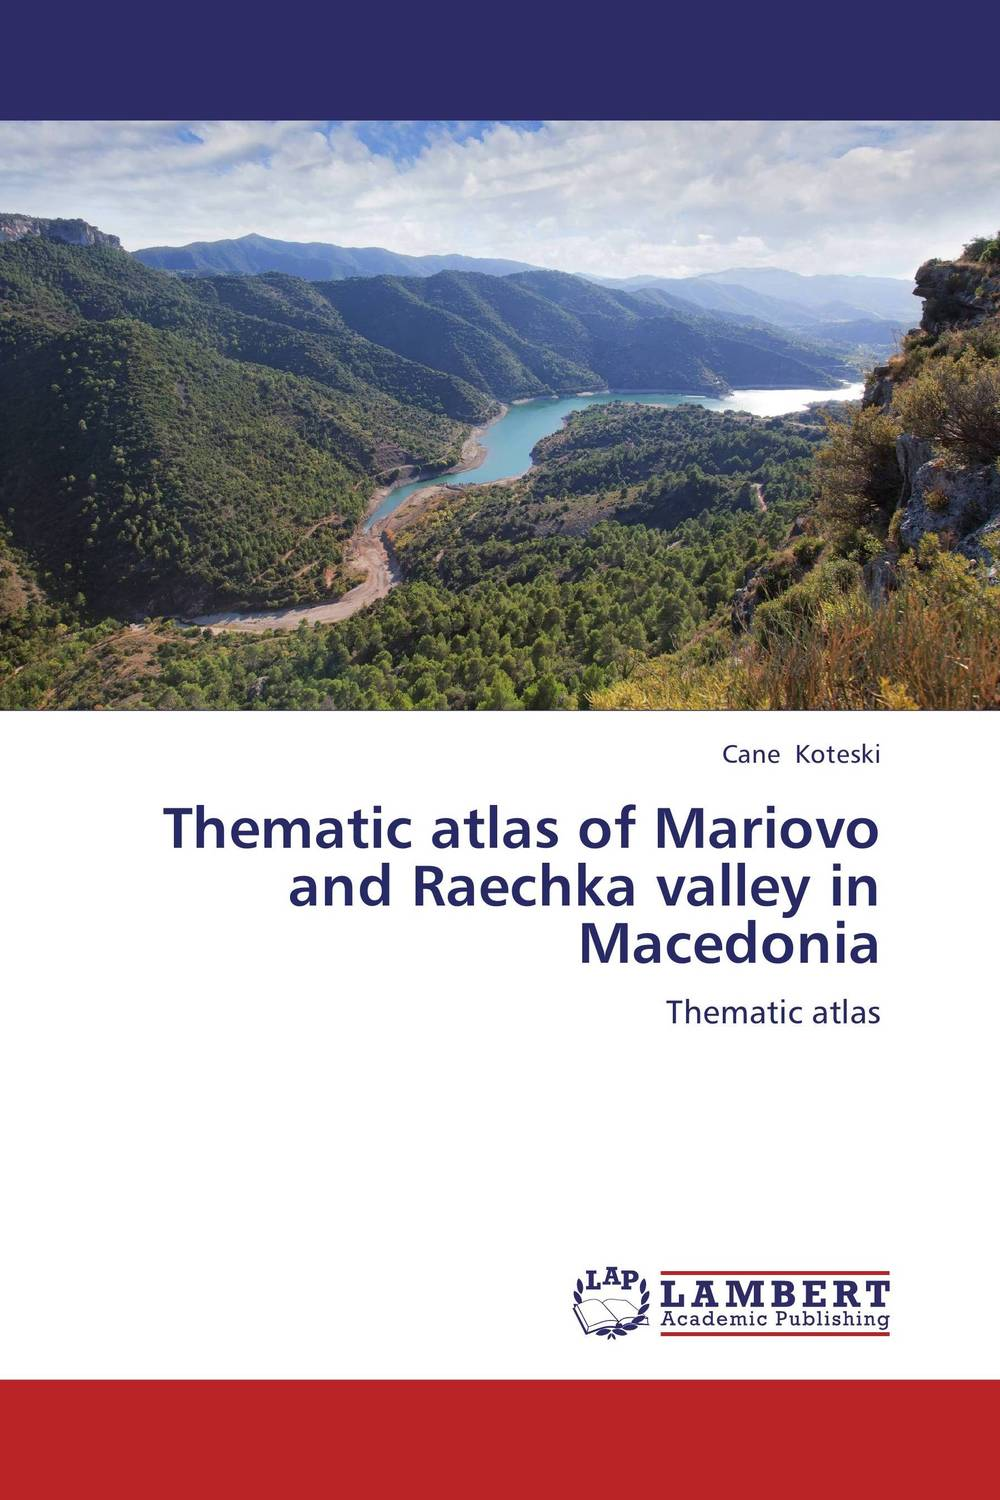 Thematic atlas of Mariovo and Raechka valley in Macedonia marketing and competitiveness of wine sector in republic of macedonia